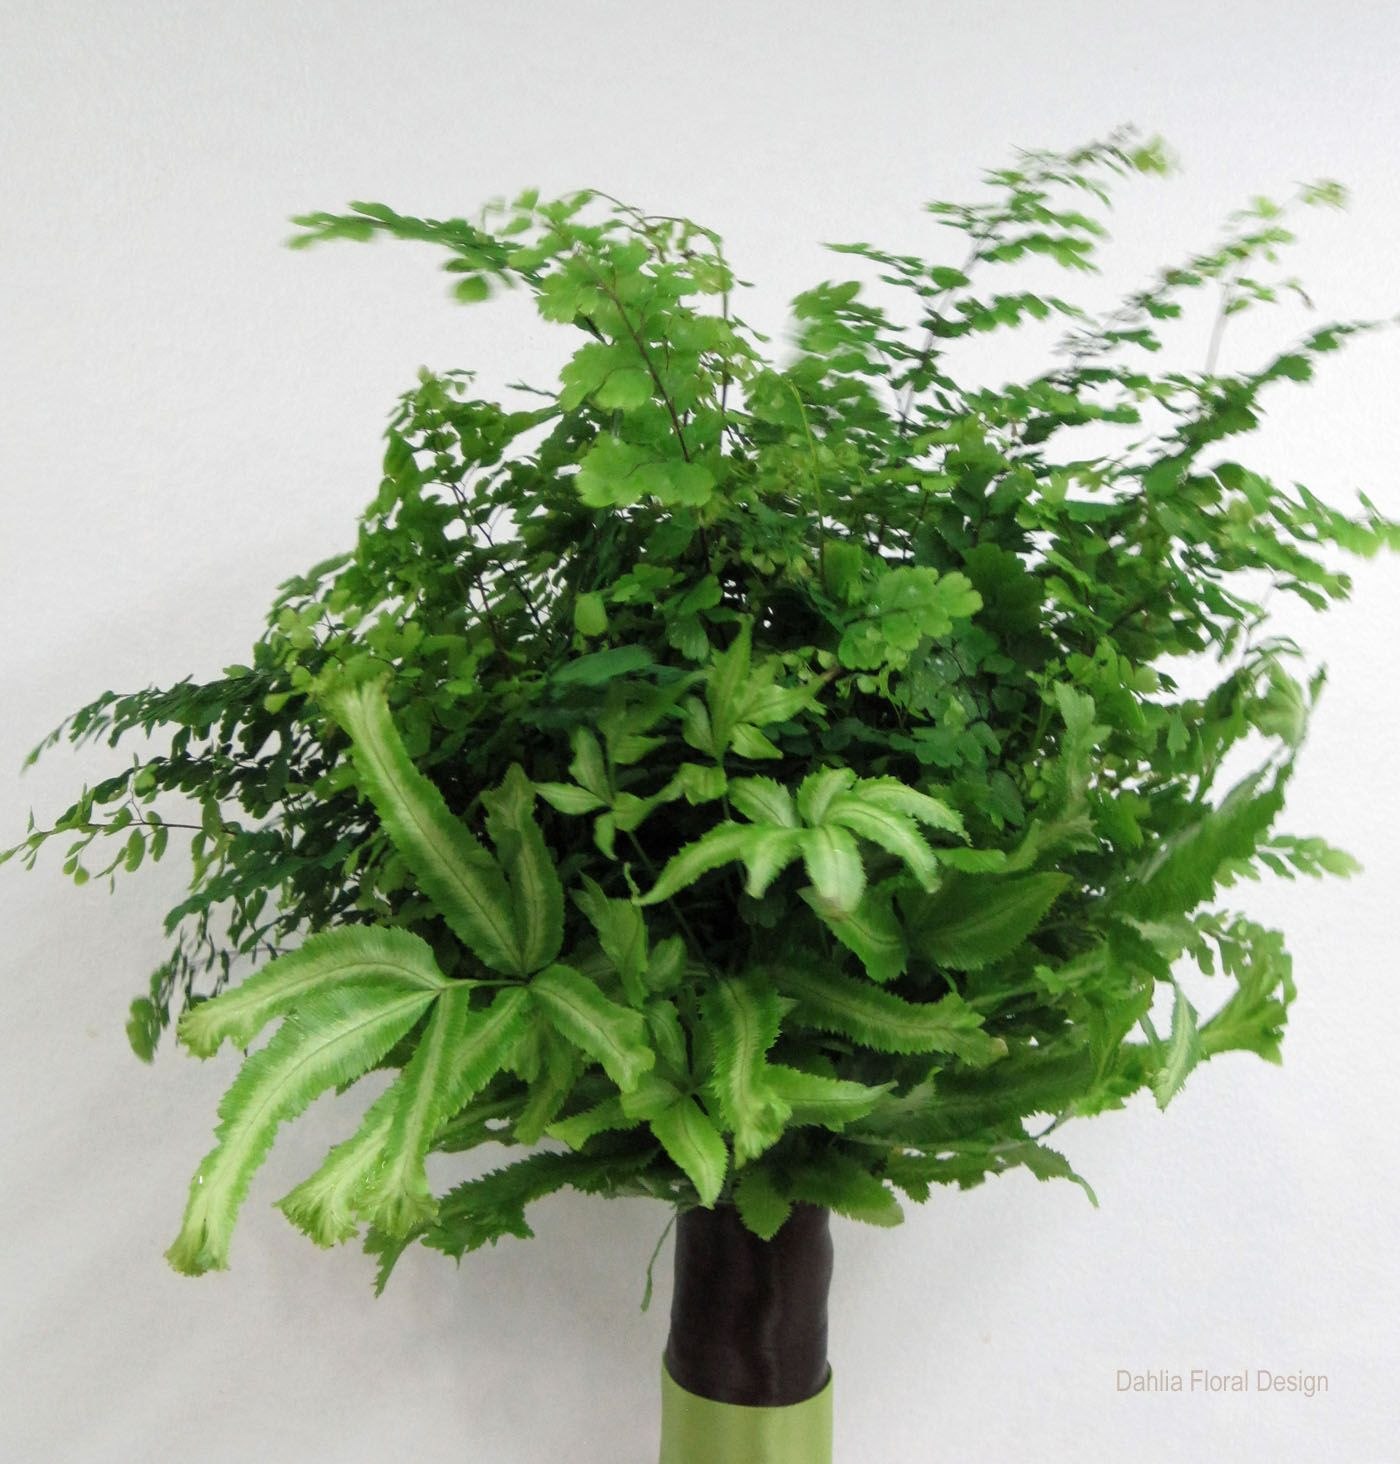 Vermont Wedding Flowers: Different Kinds Of Fern Foliage